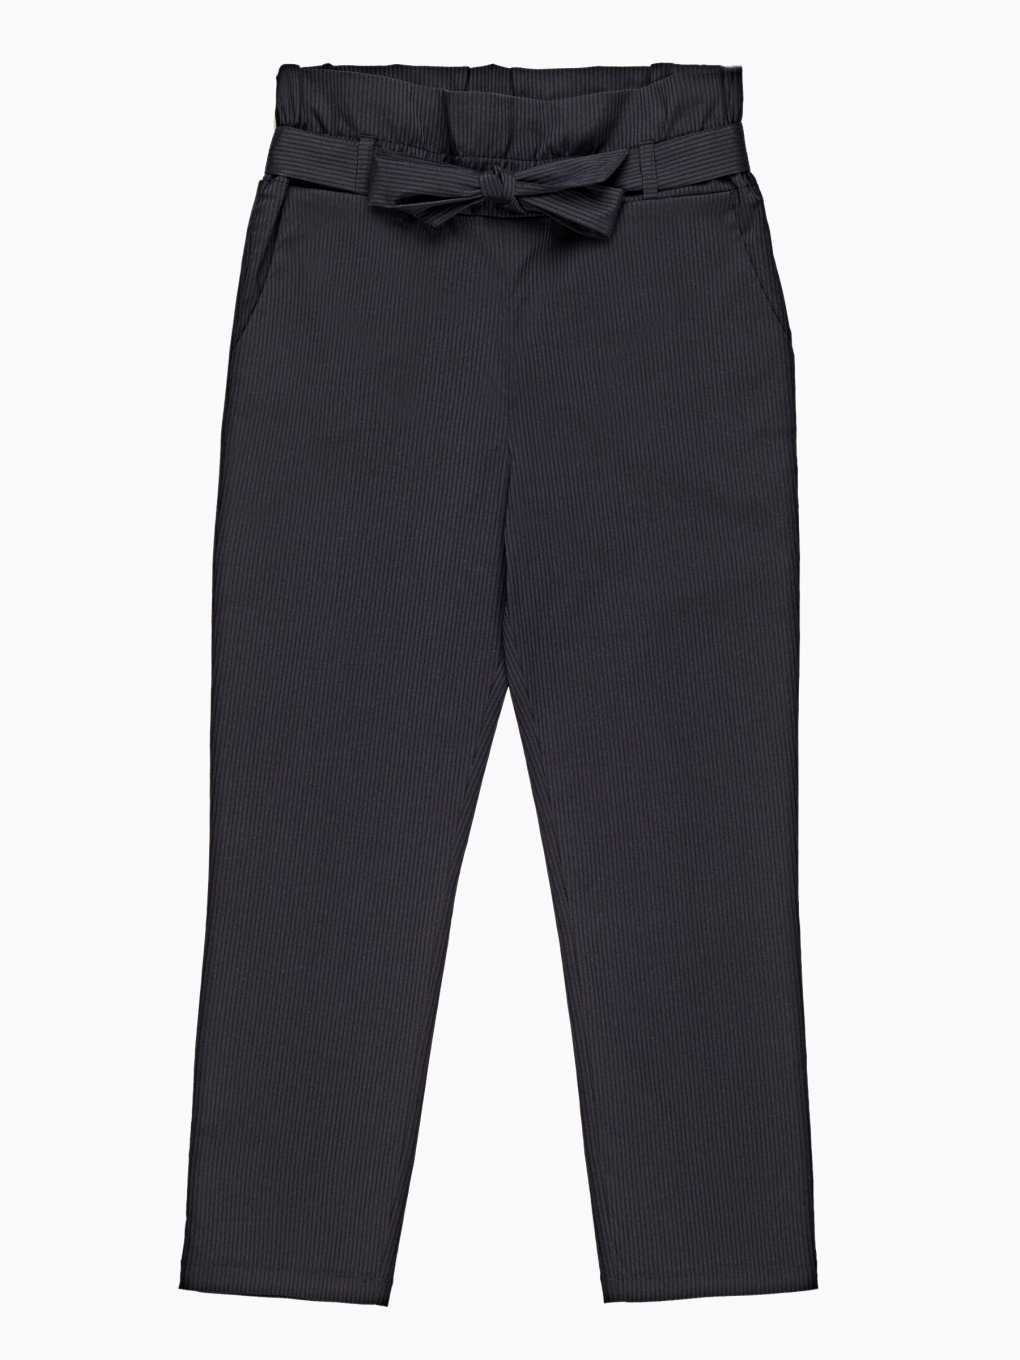 High waisted paper bag striped trousers